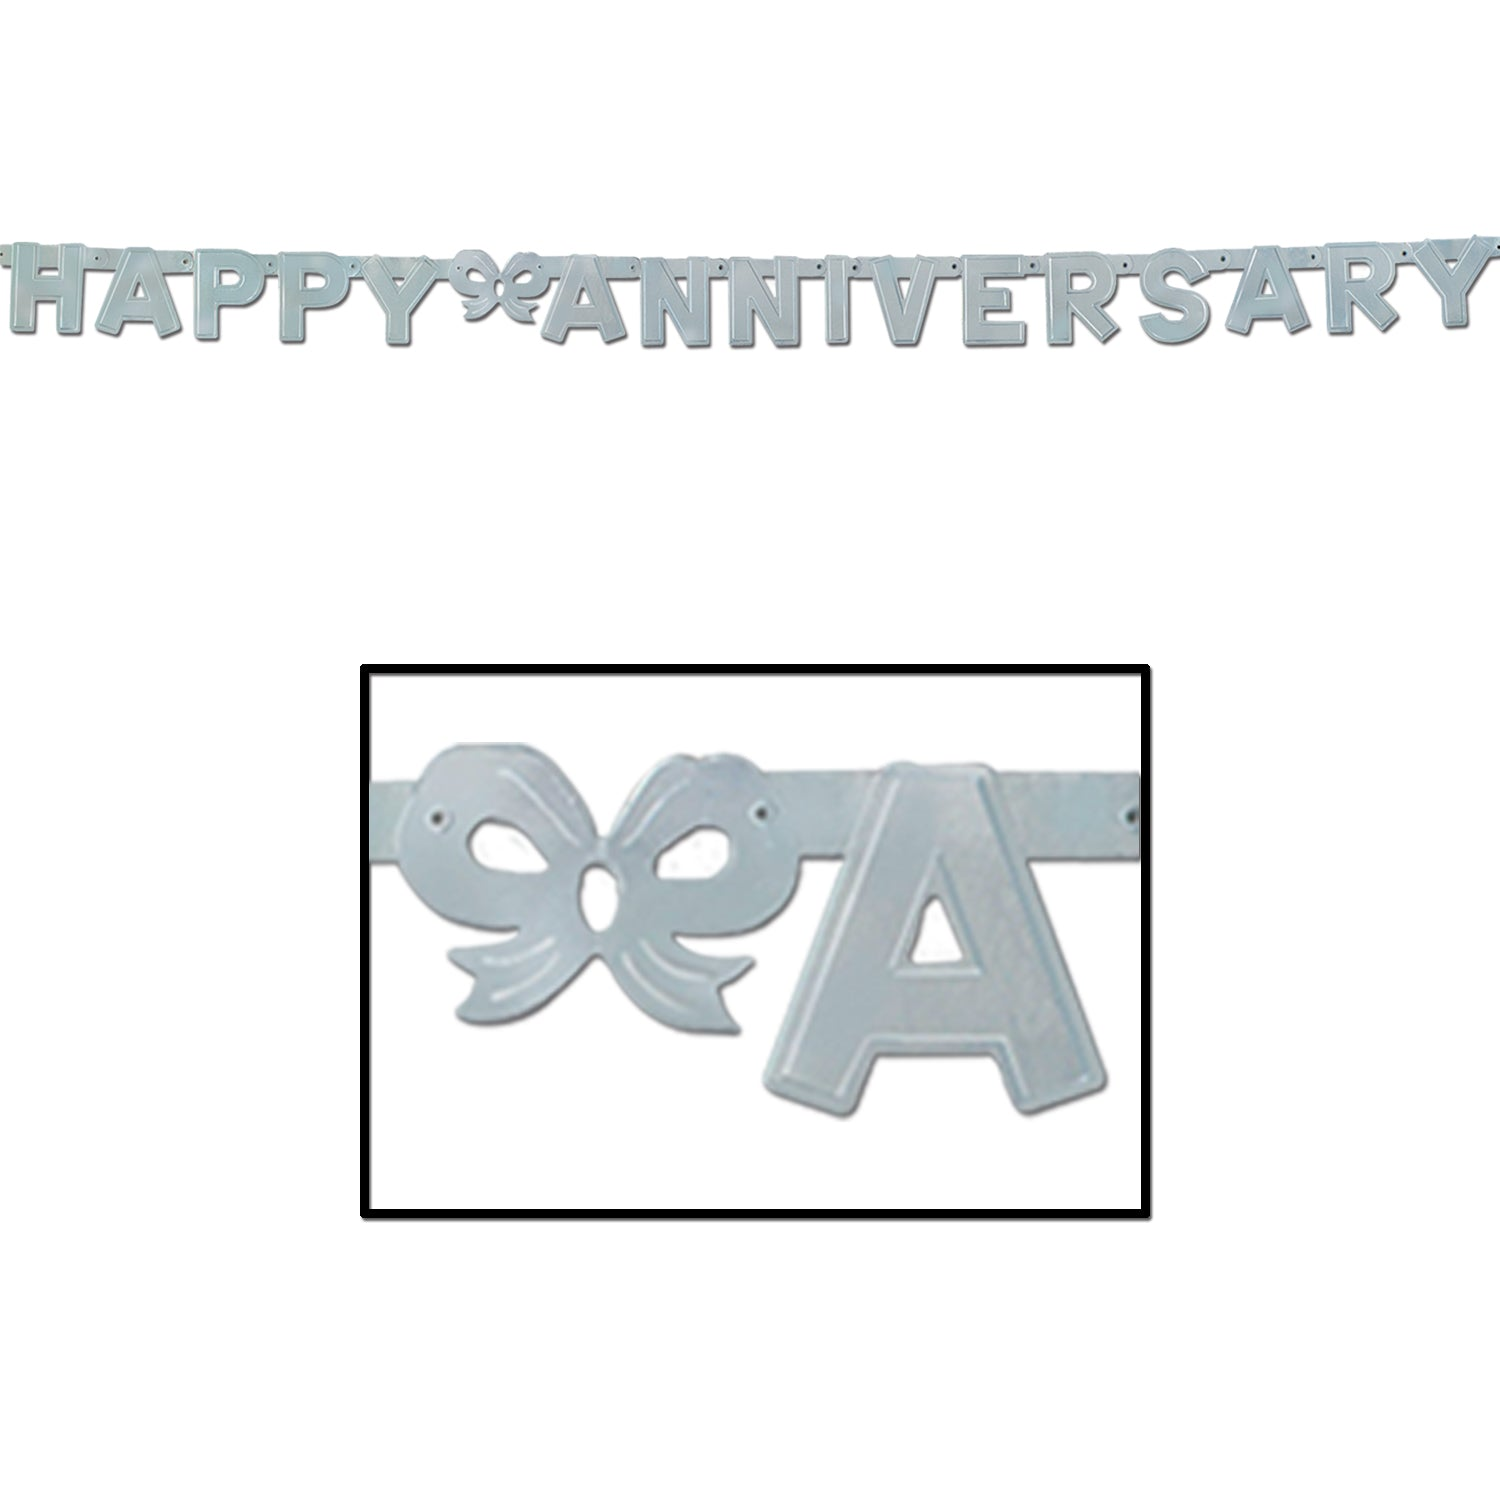 Foil Happy Anniversary Streamer, silver by Beistle - Anniversary Theme Decorations